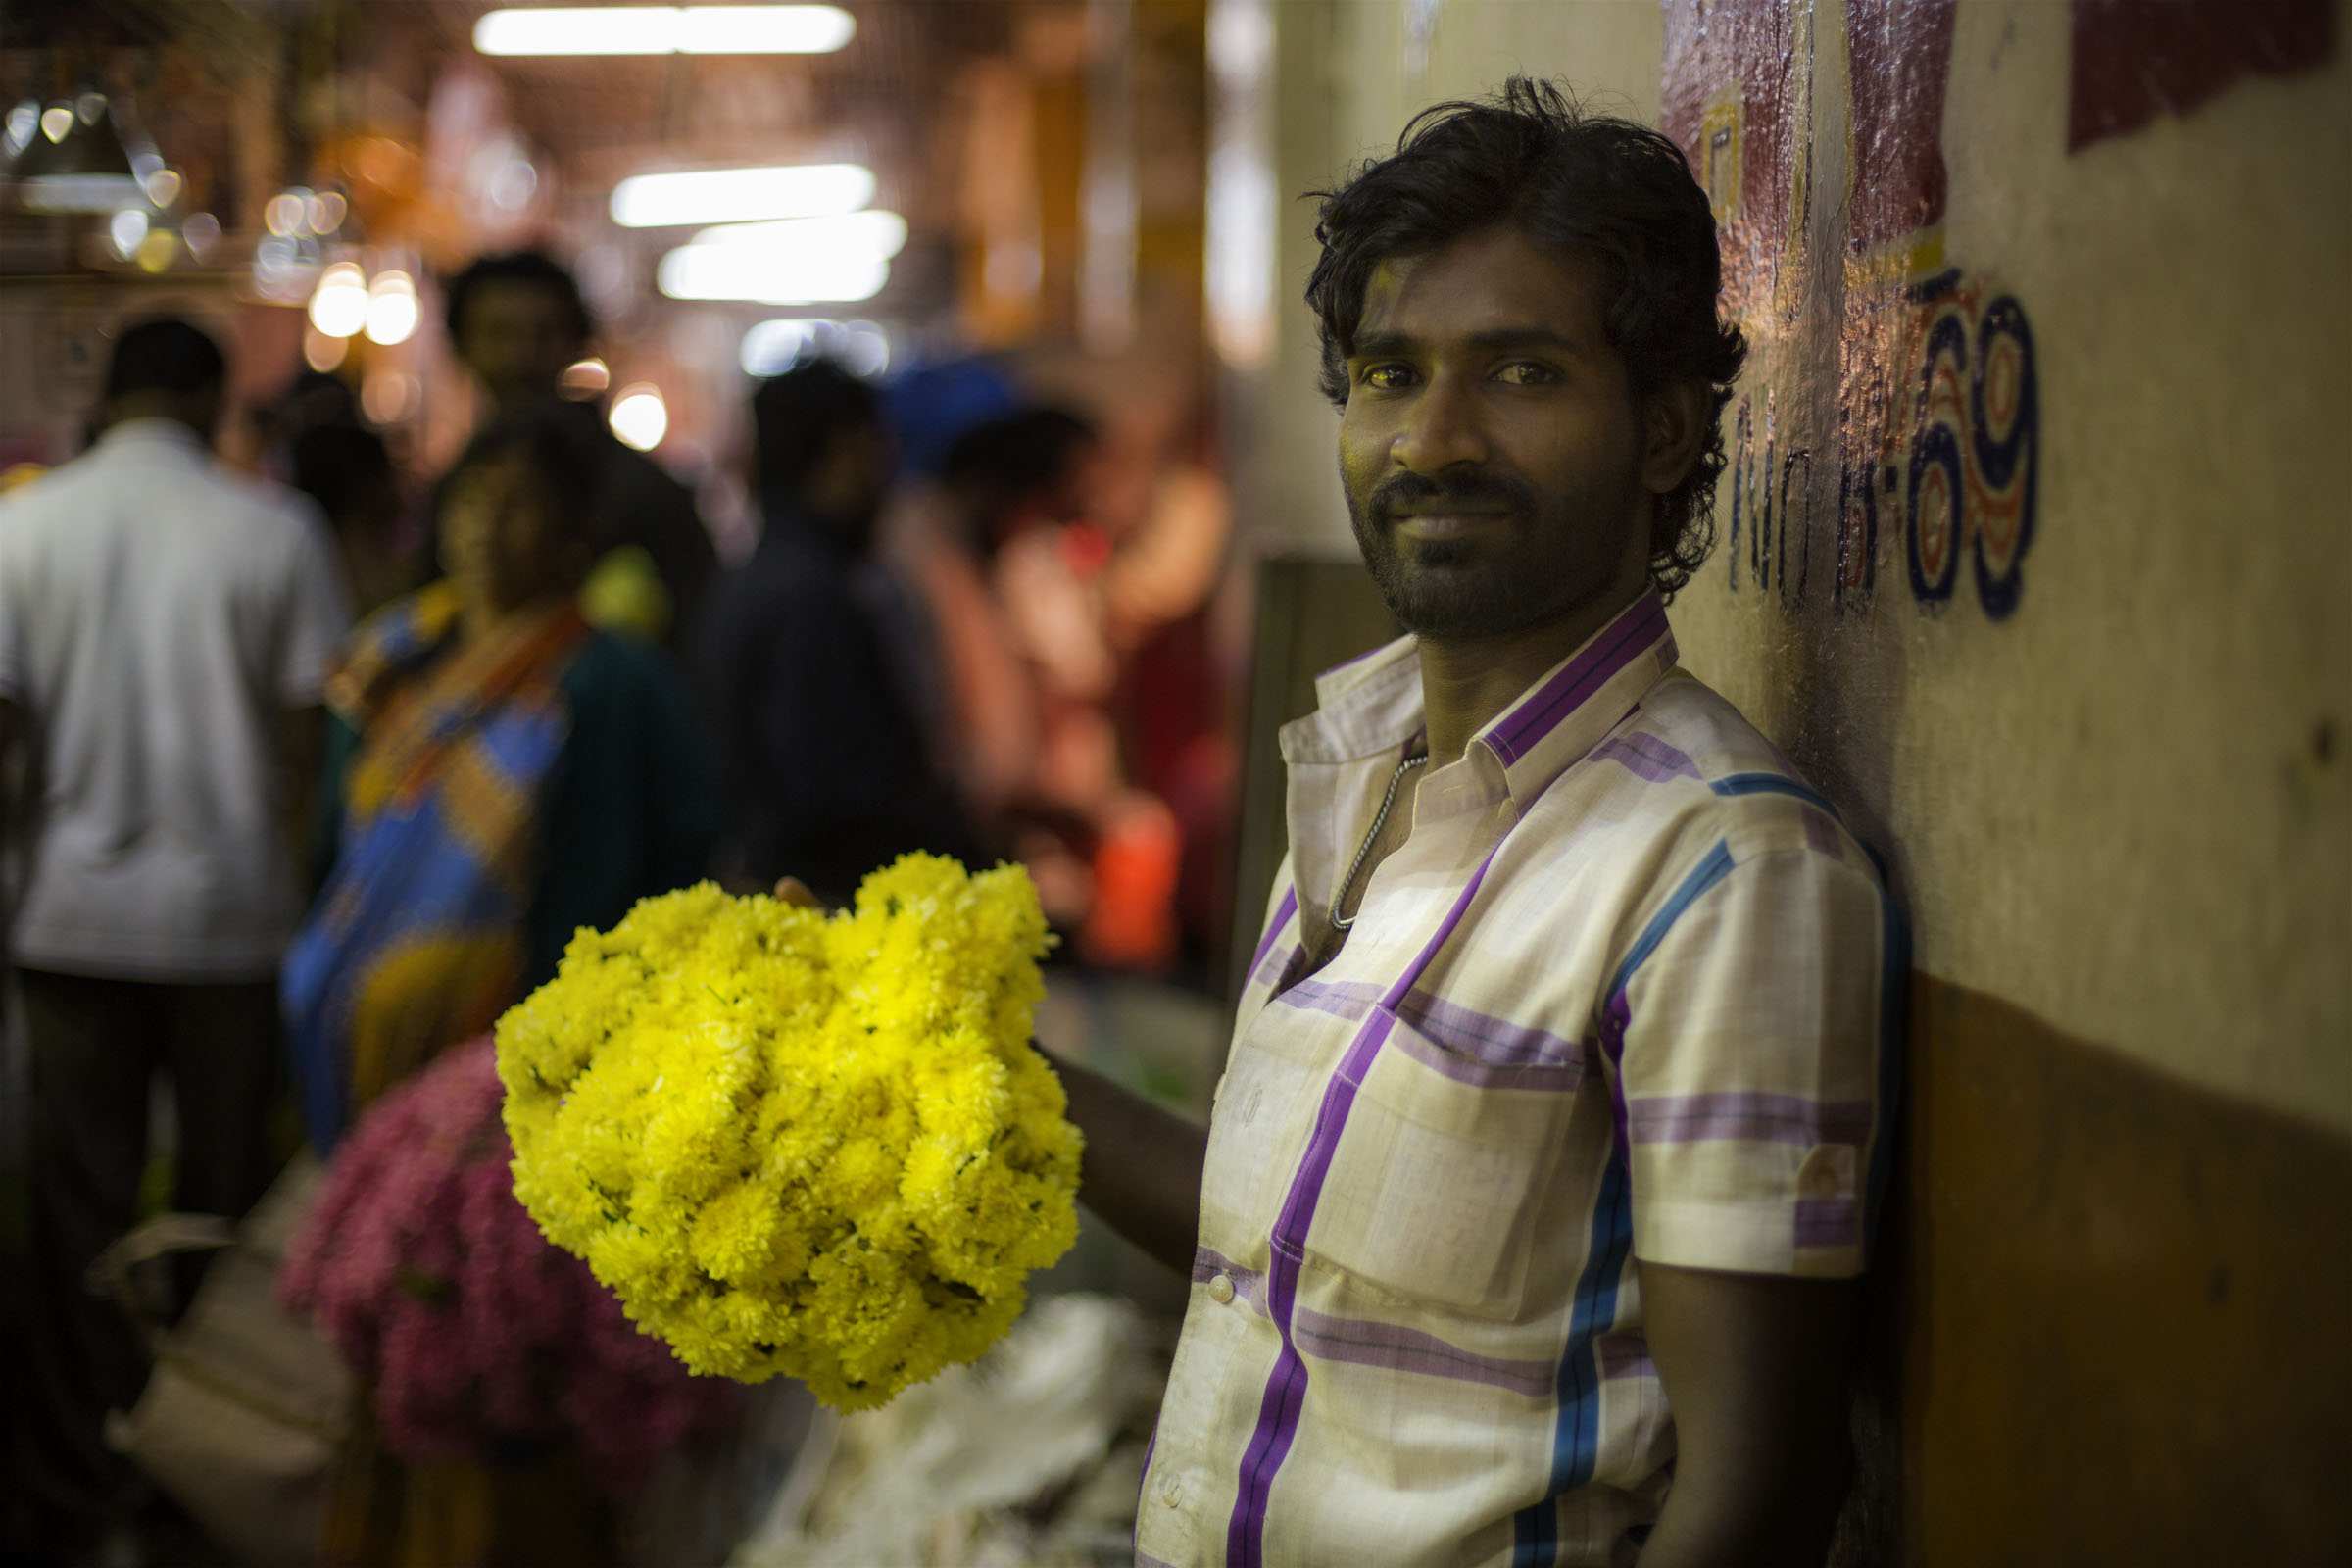 Flower vendor at Bangalore flower market